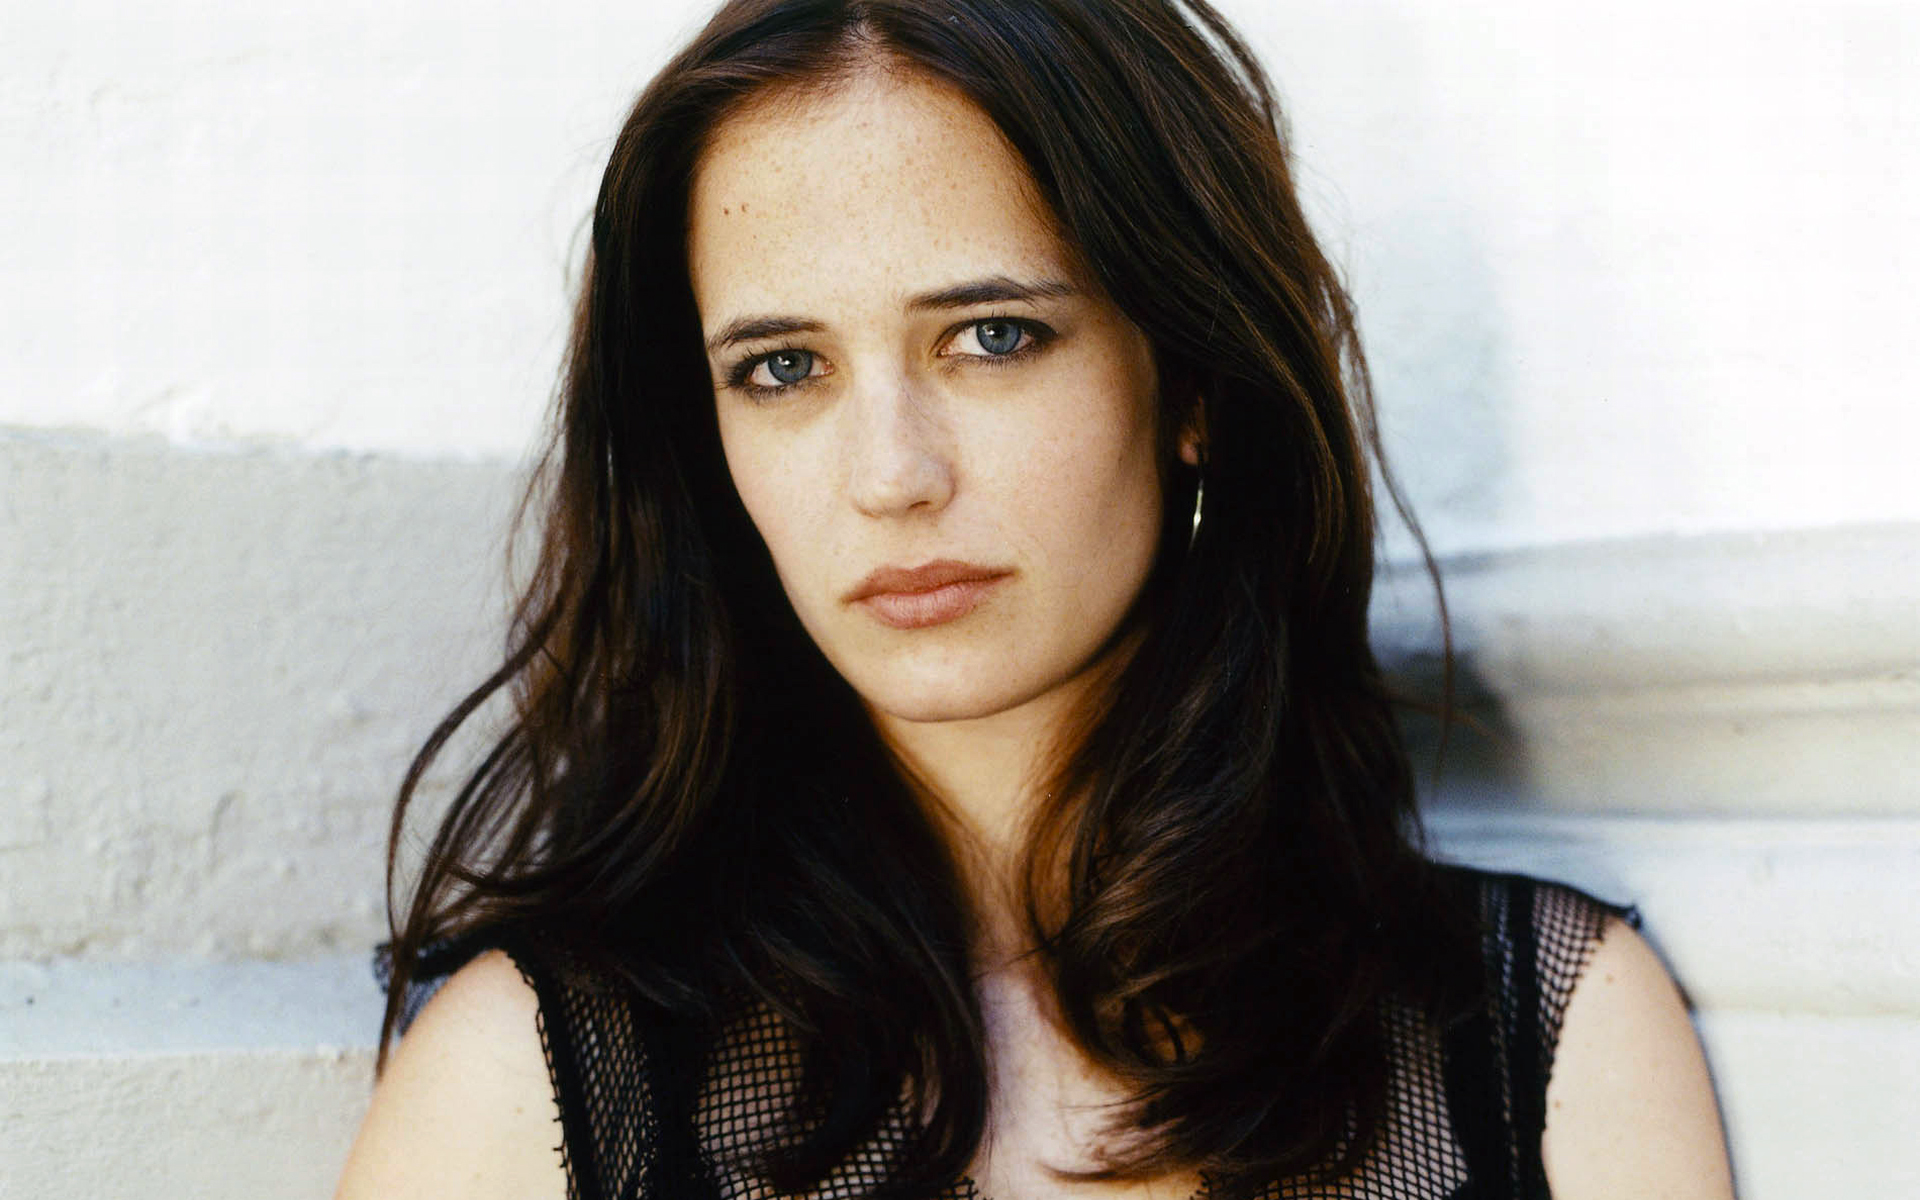 Eva Green In Talks To Star In Miss Peregrine's Home For Peculiar Children For Tim Burton